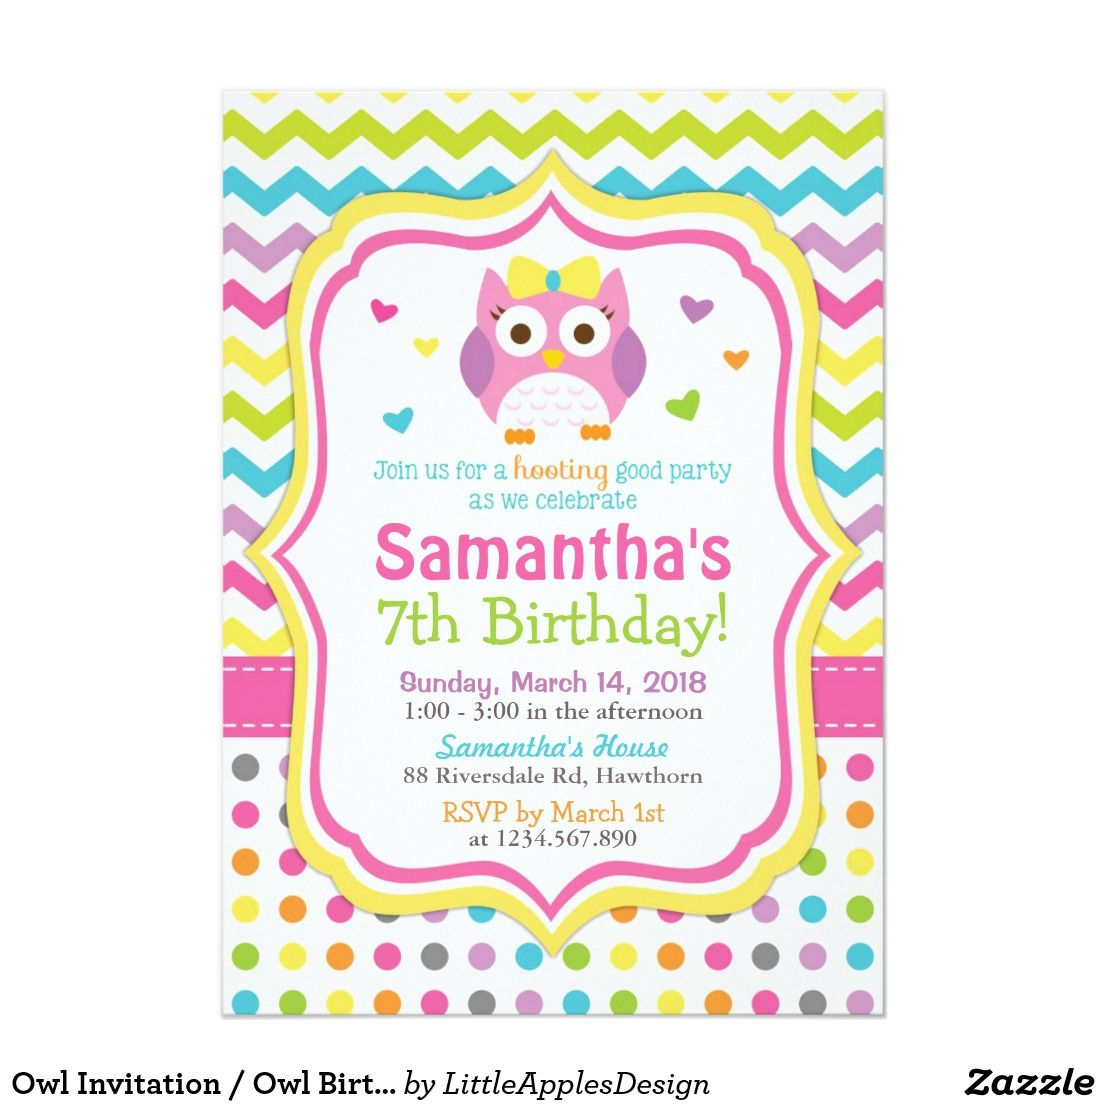 Owl invitation owl birthday invitation invite owl invitations owl invitation owl birthday invitation invite this listing is for owl invitation great for owl birthday party theme for your little ones filmwisefo